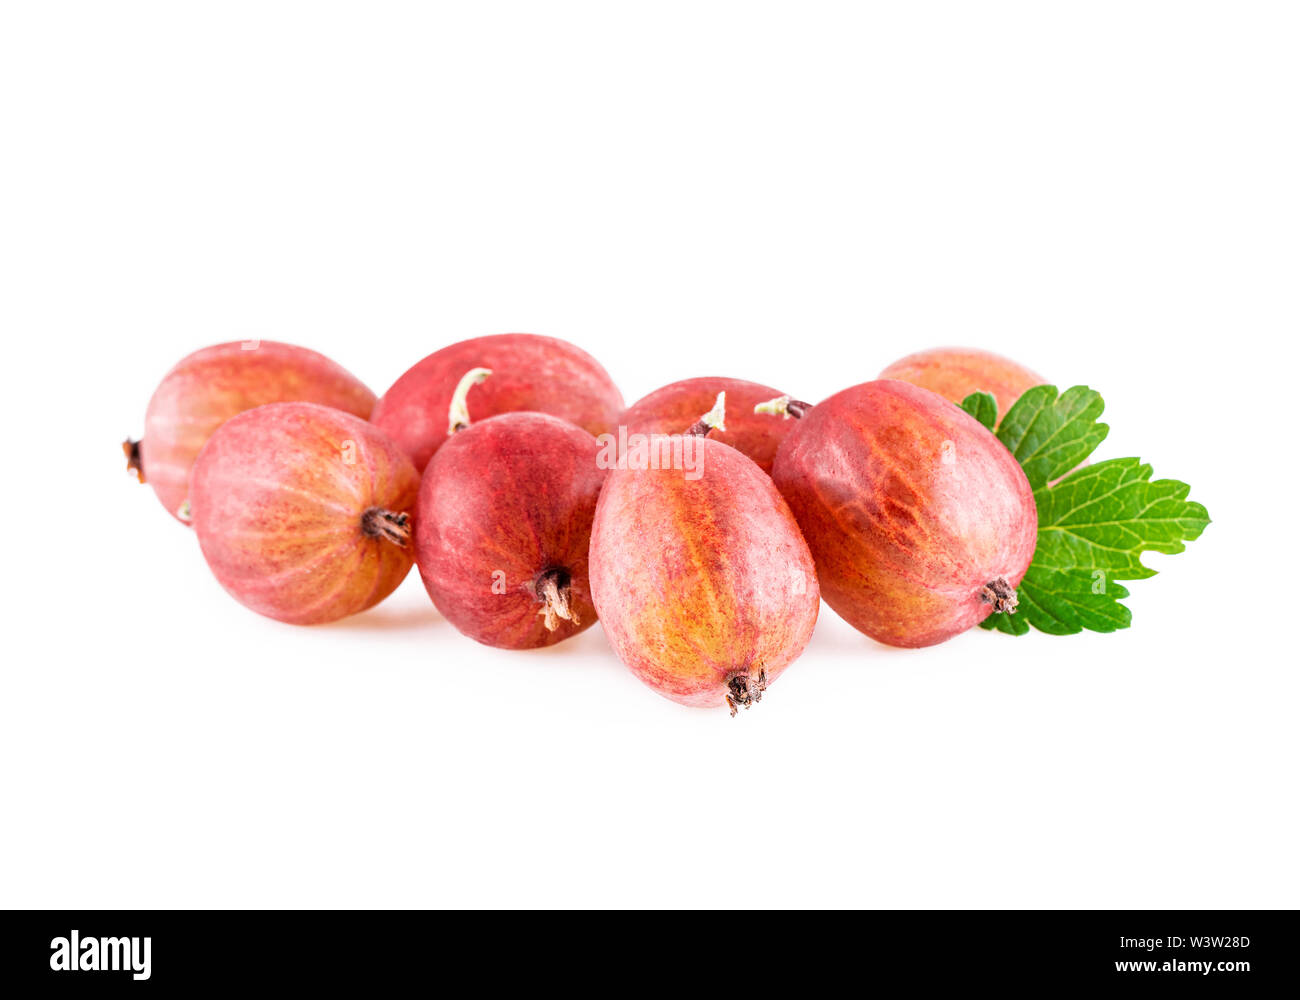 Gooseberries Organic Gooseberry With Leaf On White - Stock Image